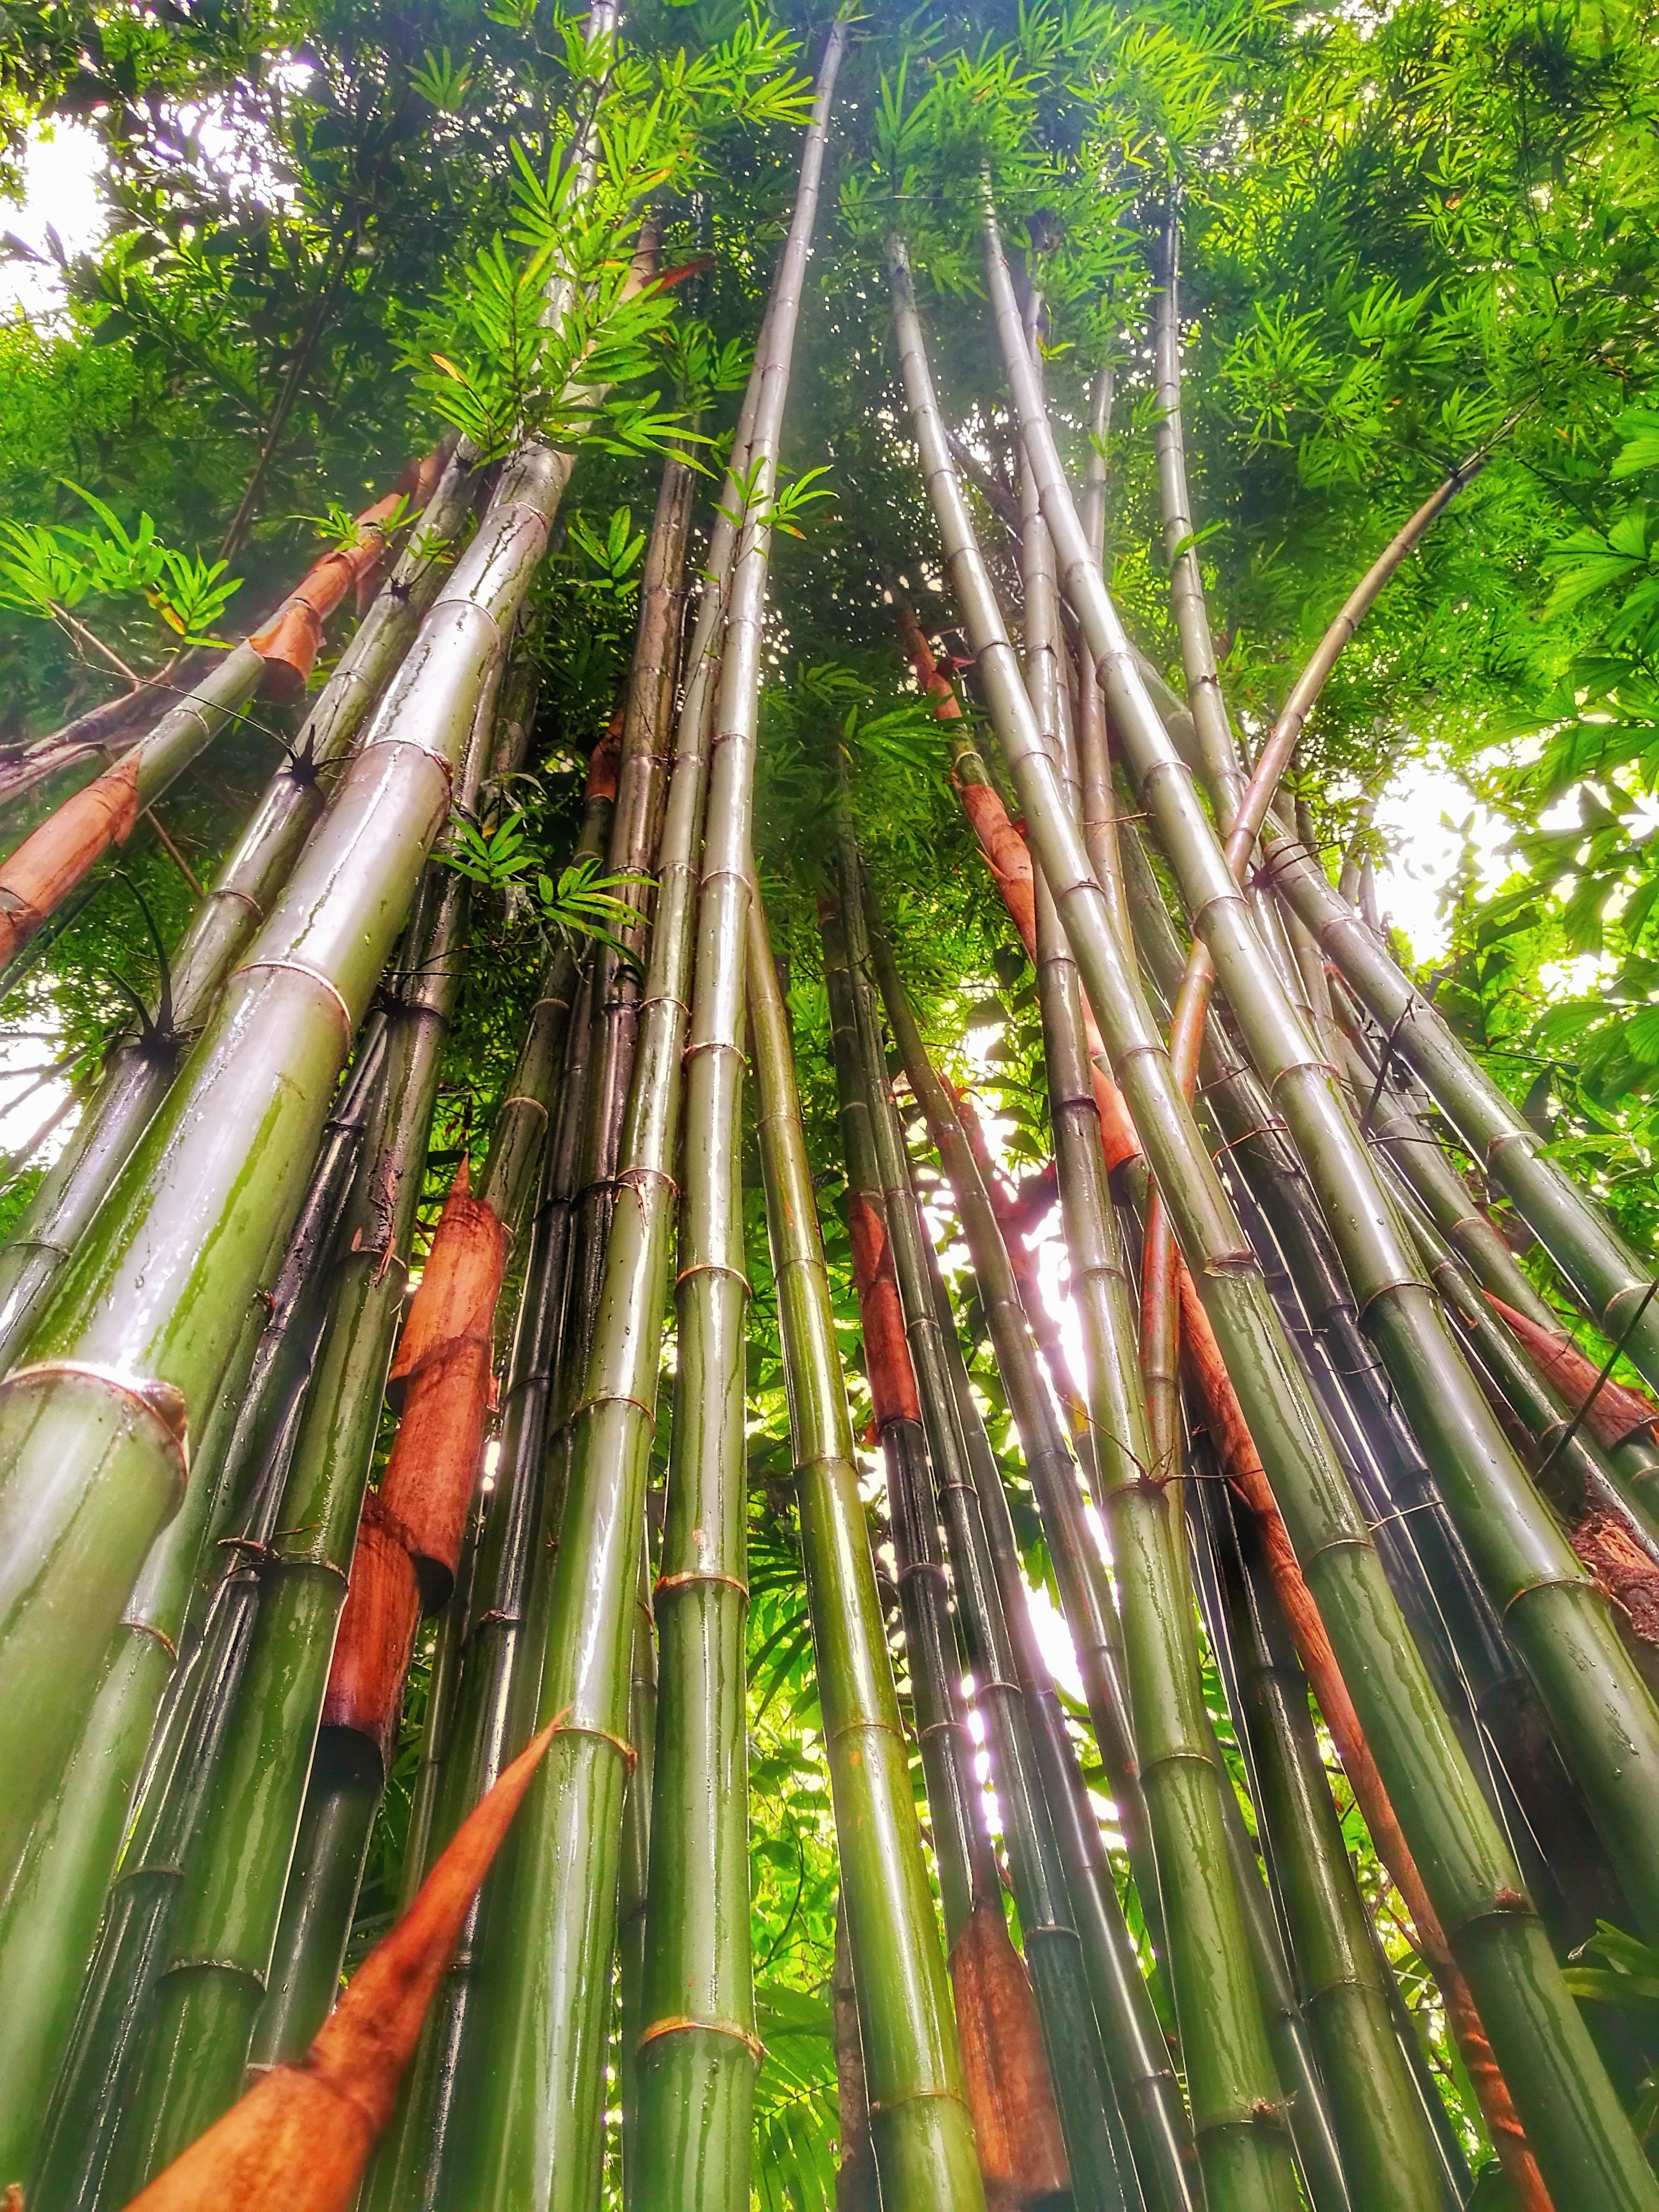 tree, growth, bamboo grove, nature, low angle view, bamboo - plant, no people, green color, outdoors, forest, day